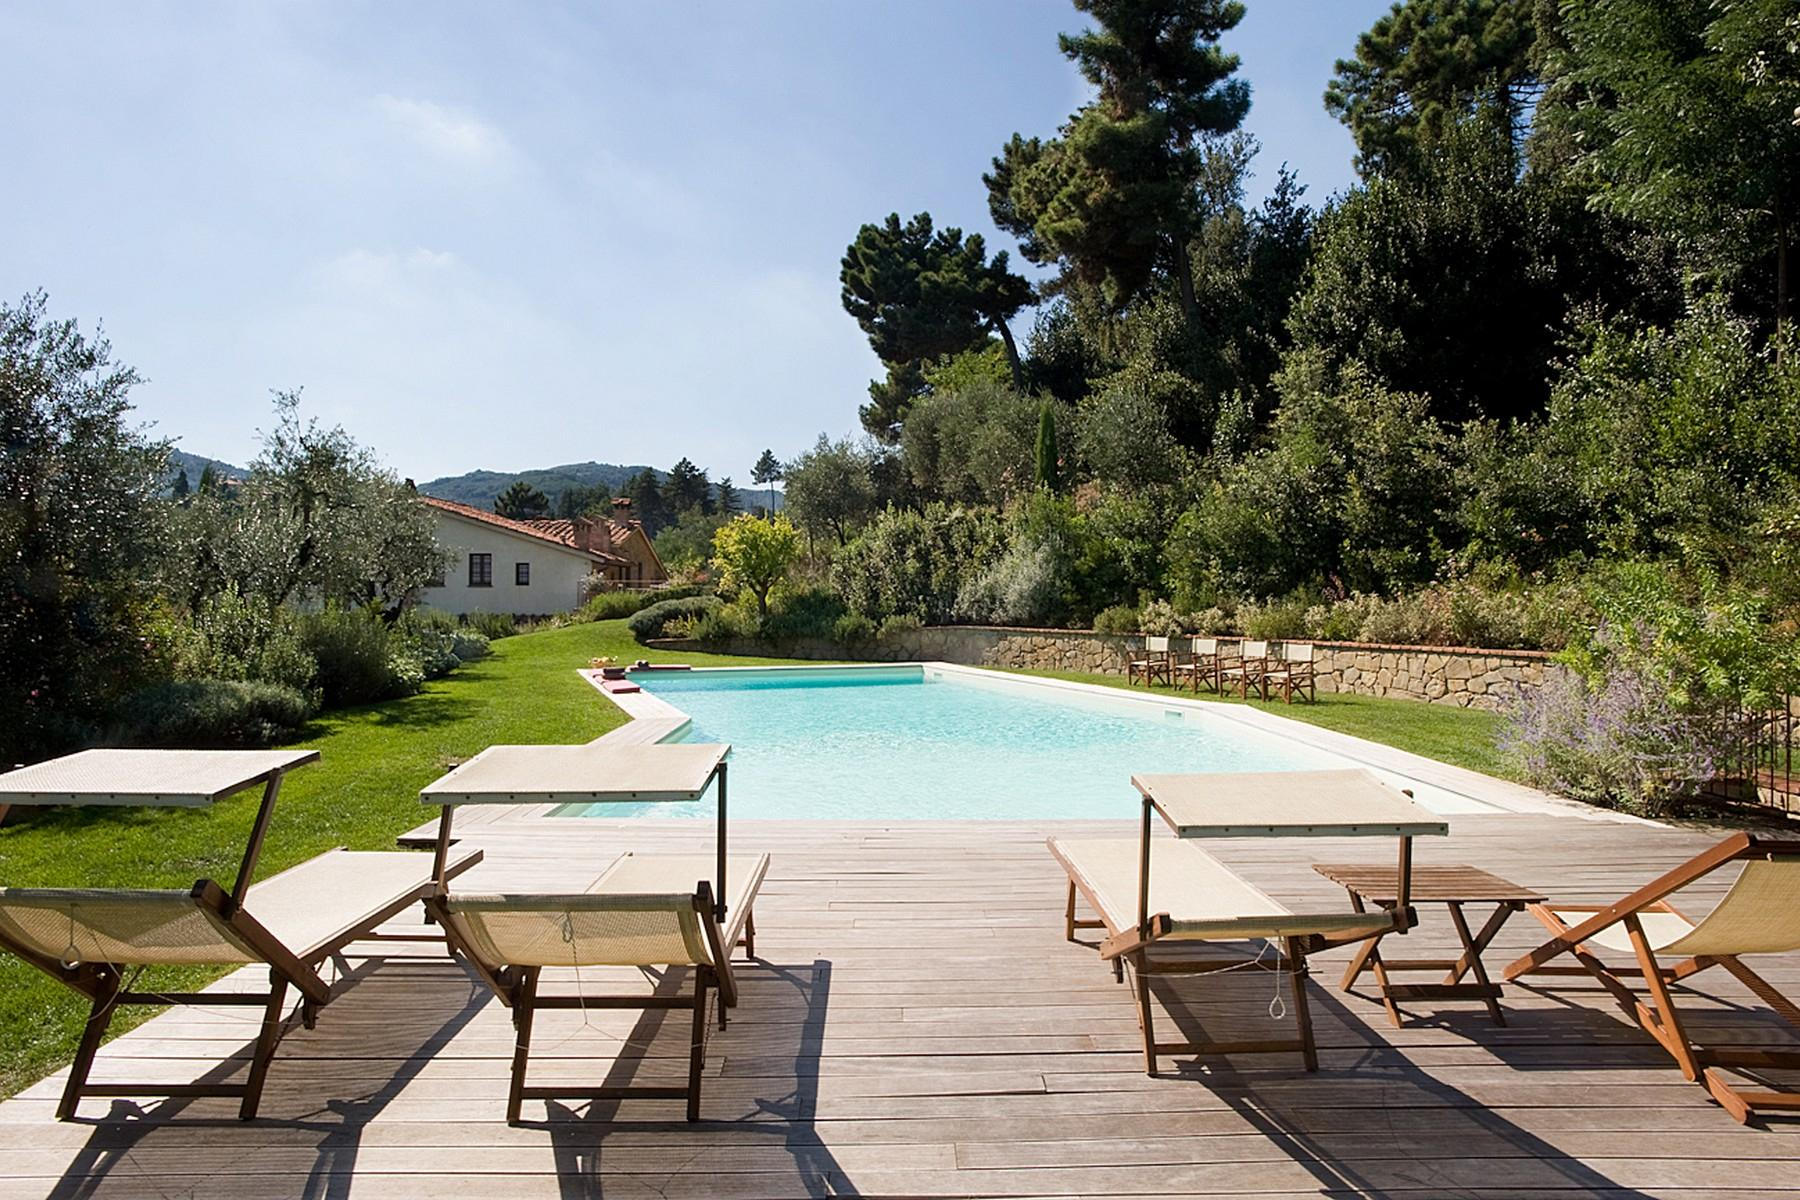 Farmhouse for sale in the Tuscan hills - 1